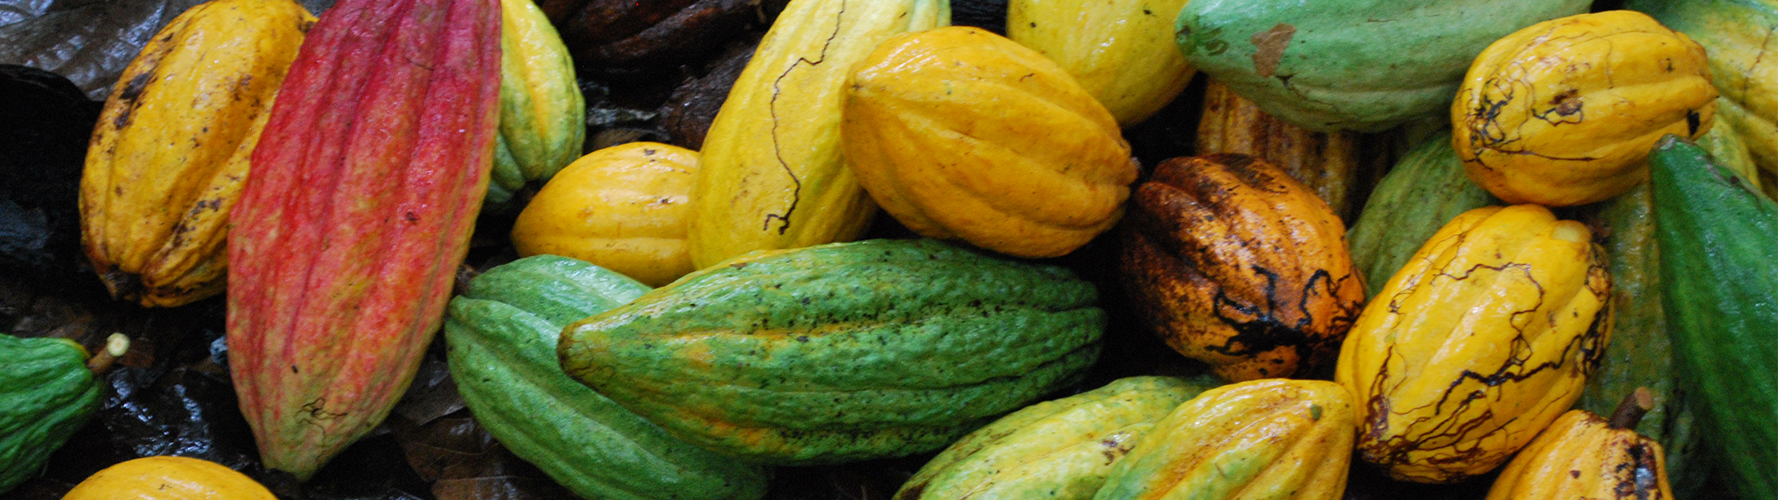 freshly harvested cacao pods